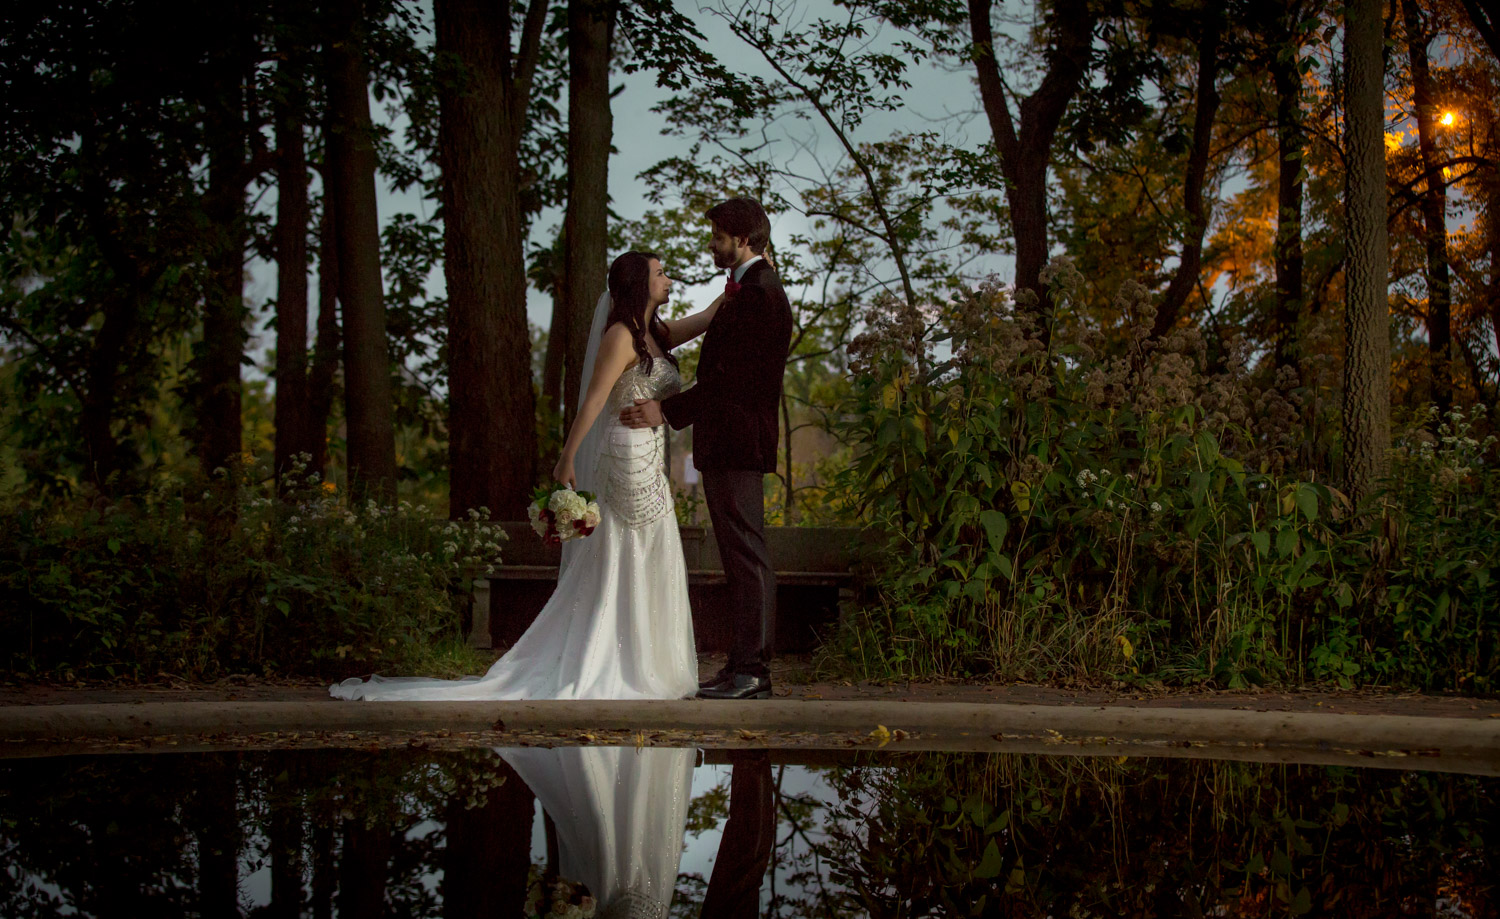 A bride and groom pose at sunset at The Grove at Redfield Estate in Glenview, IL. Chicago Wedding Photography - Amy Stallard Photography